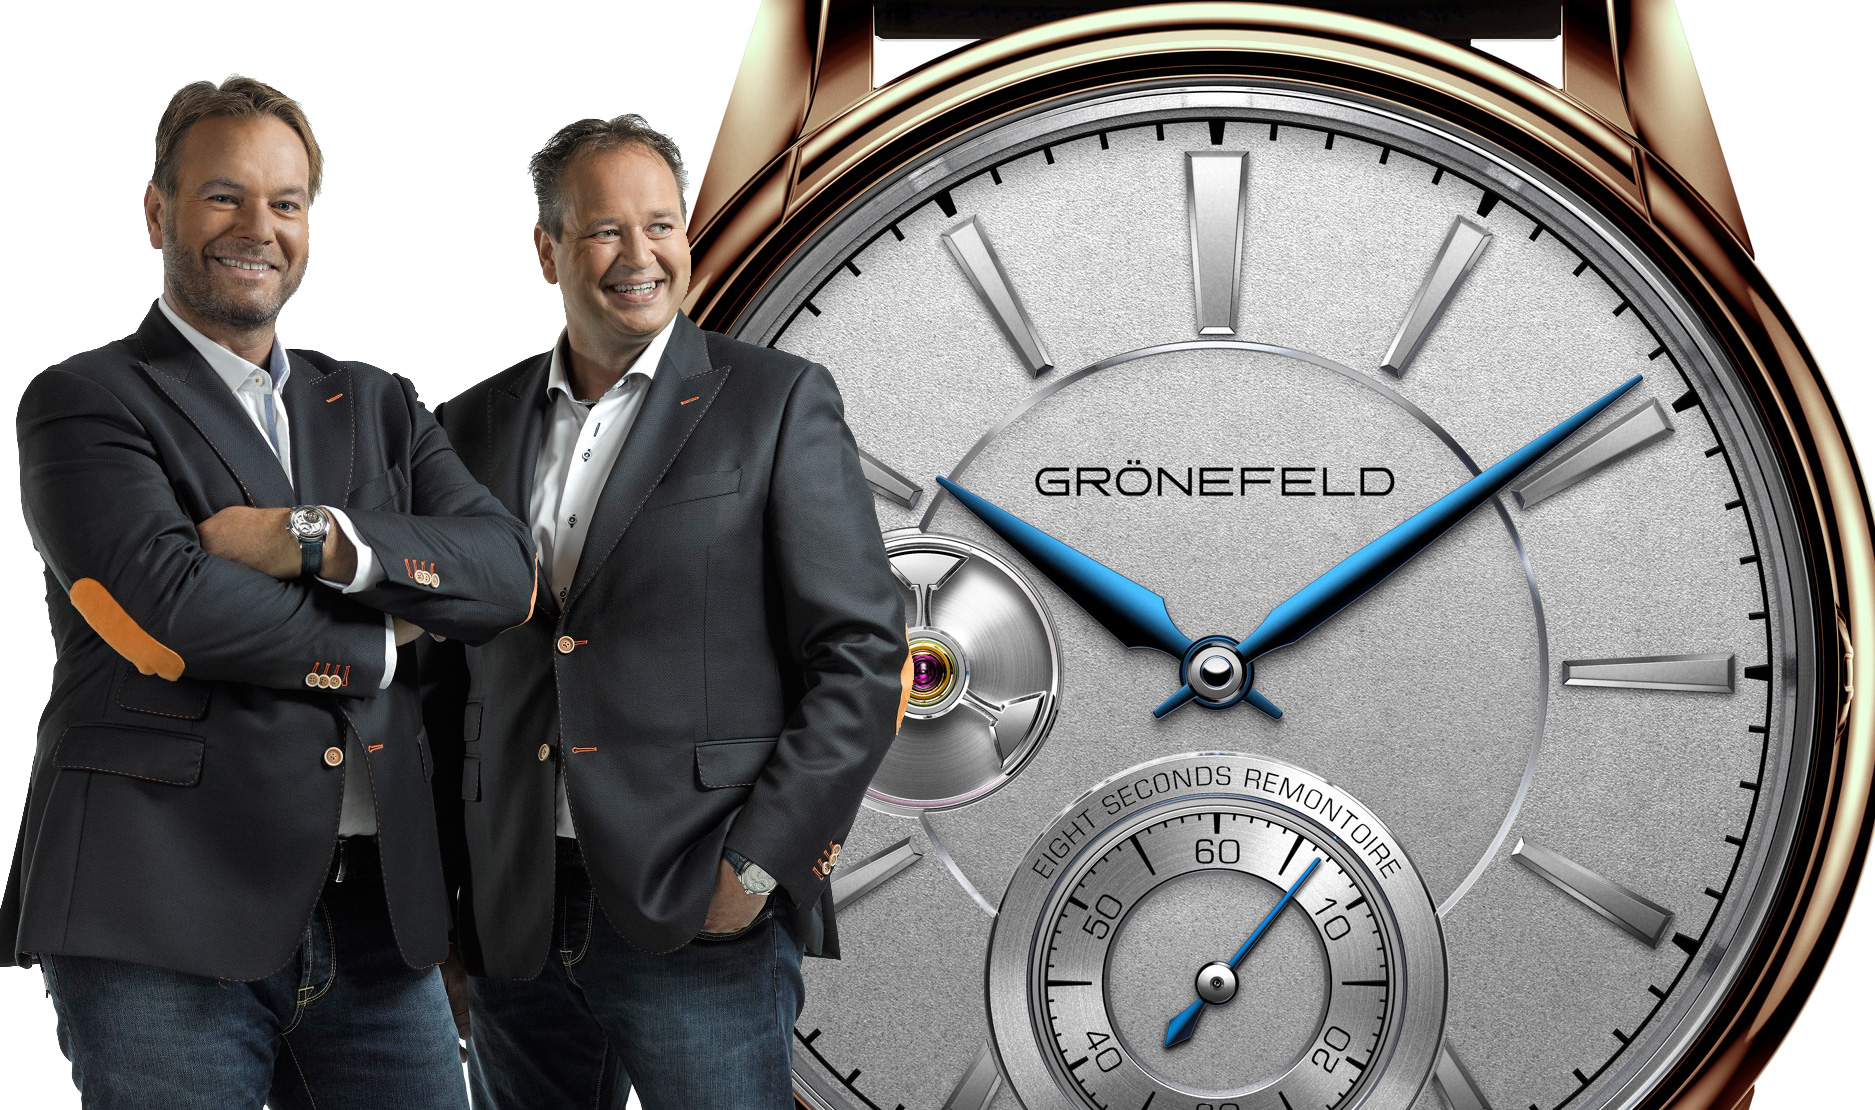 Bart and Tim Grönefeld Go Back To Their Roots With The 1941 Remontoire